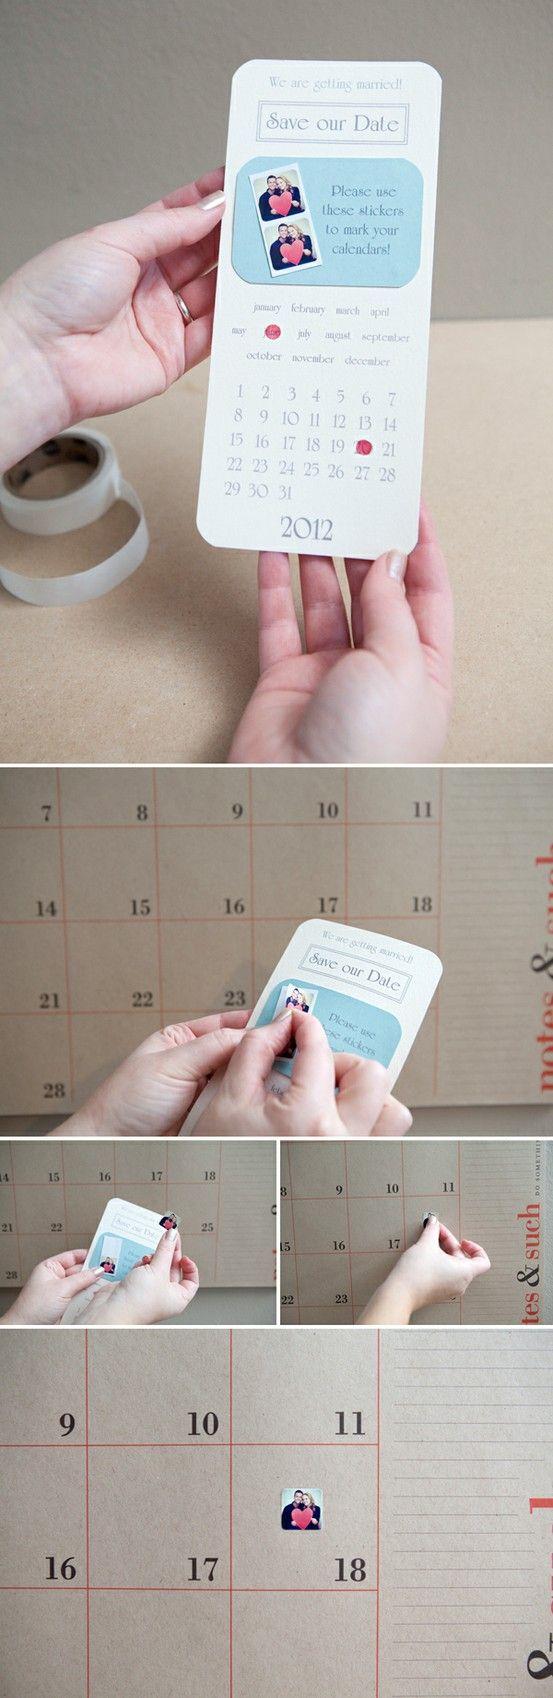 super cute idea for a save the date